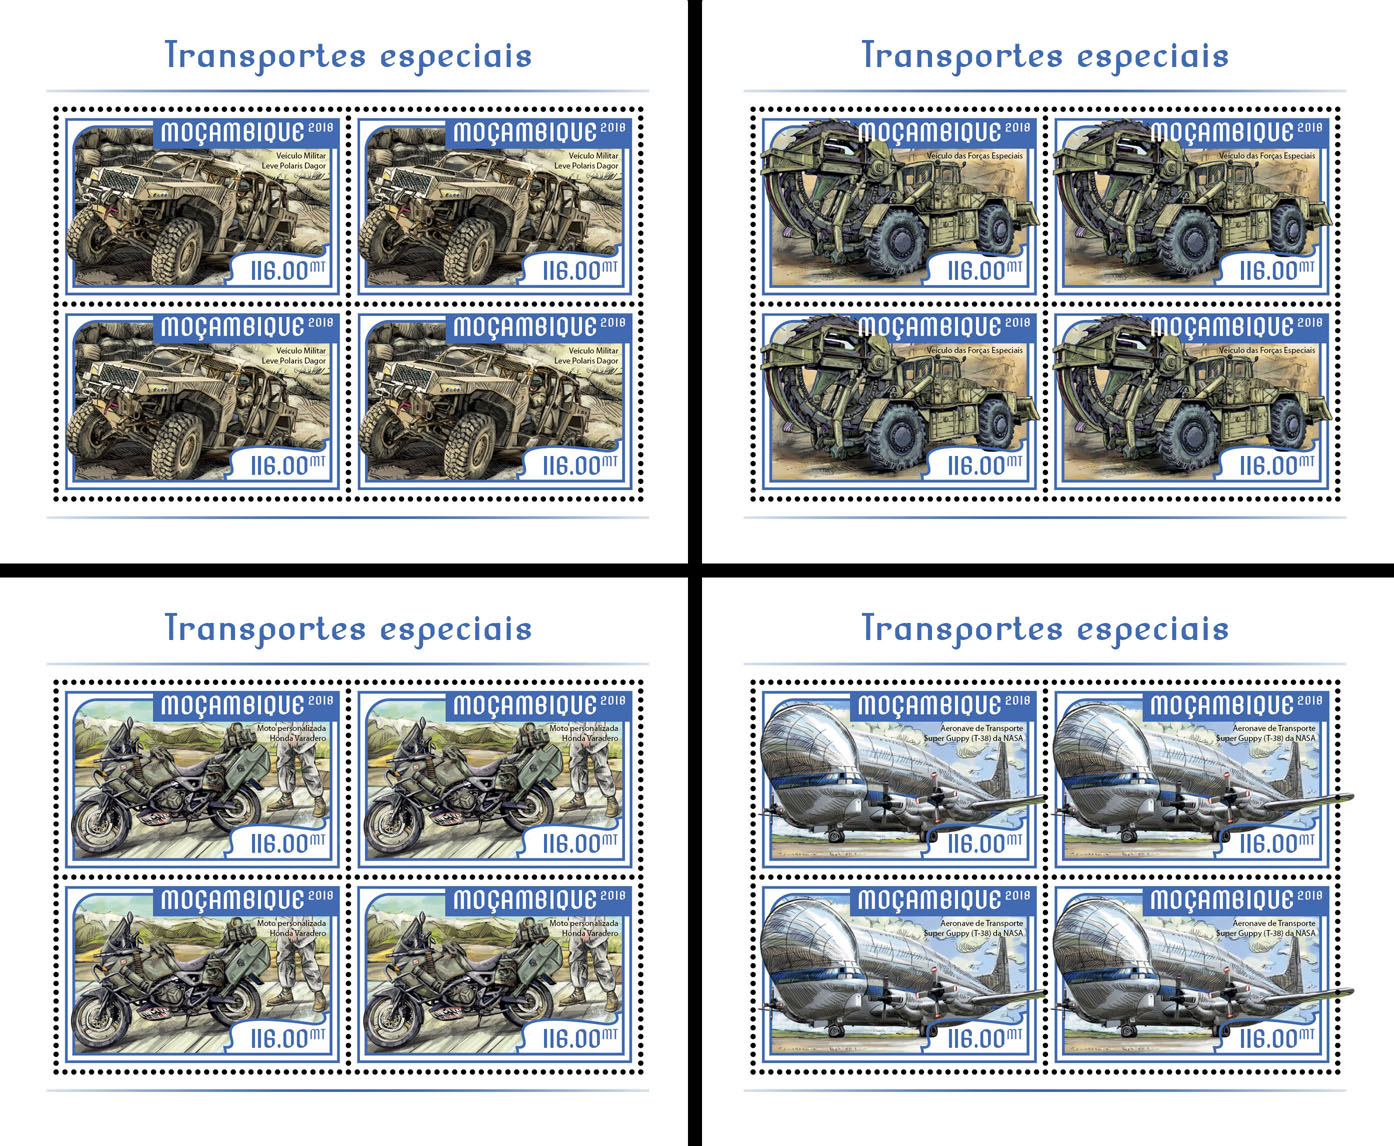 Special transport (4 sets of 4 stamps) - Issue of Mozambique postage Stamps